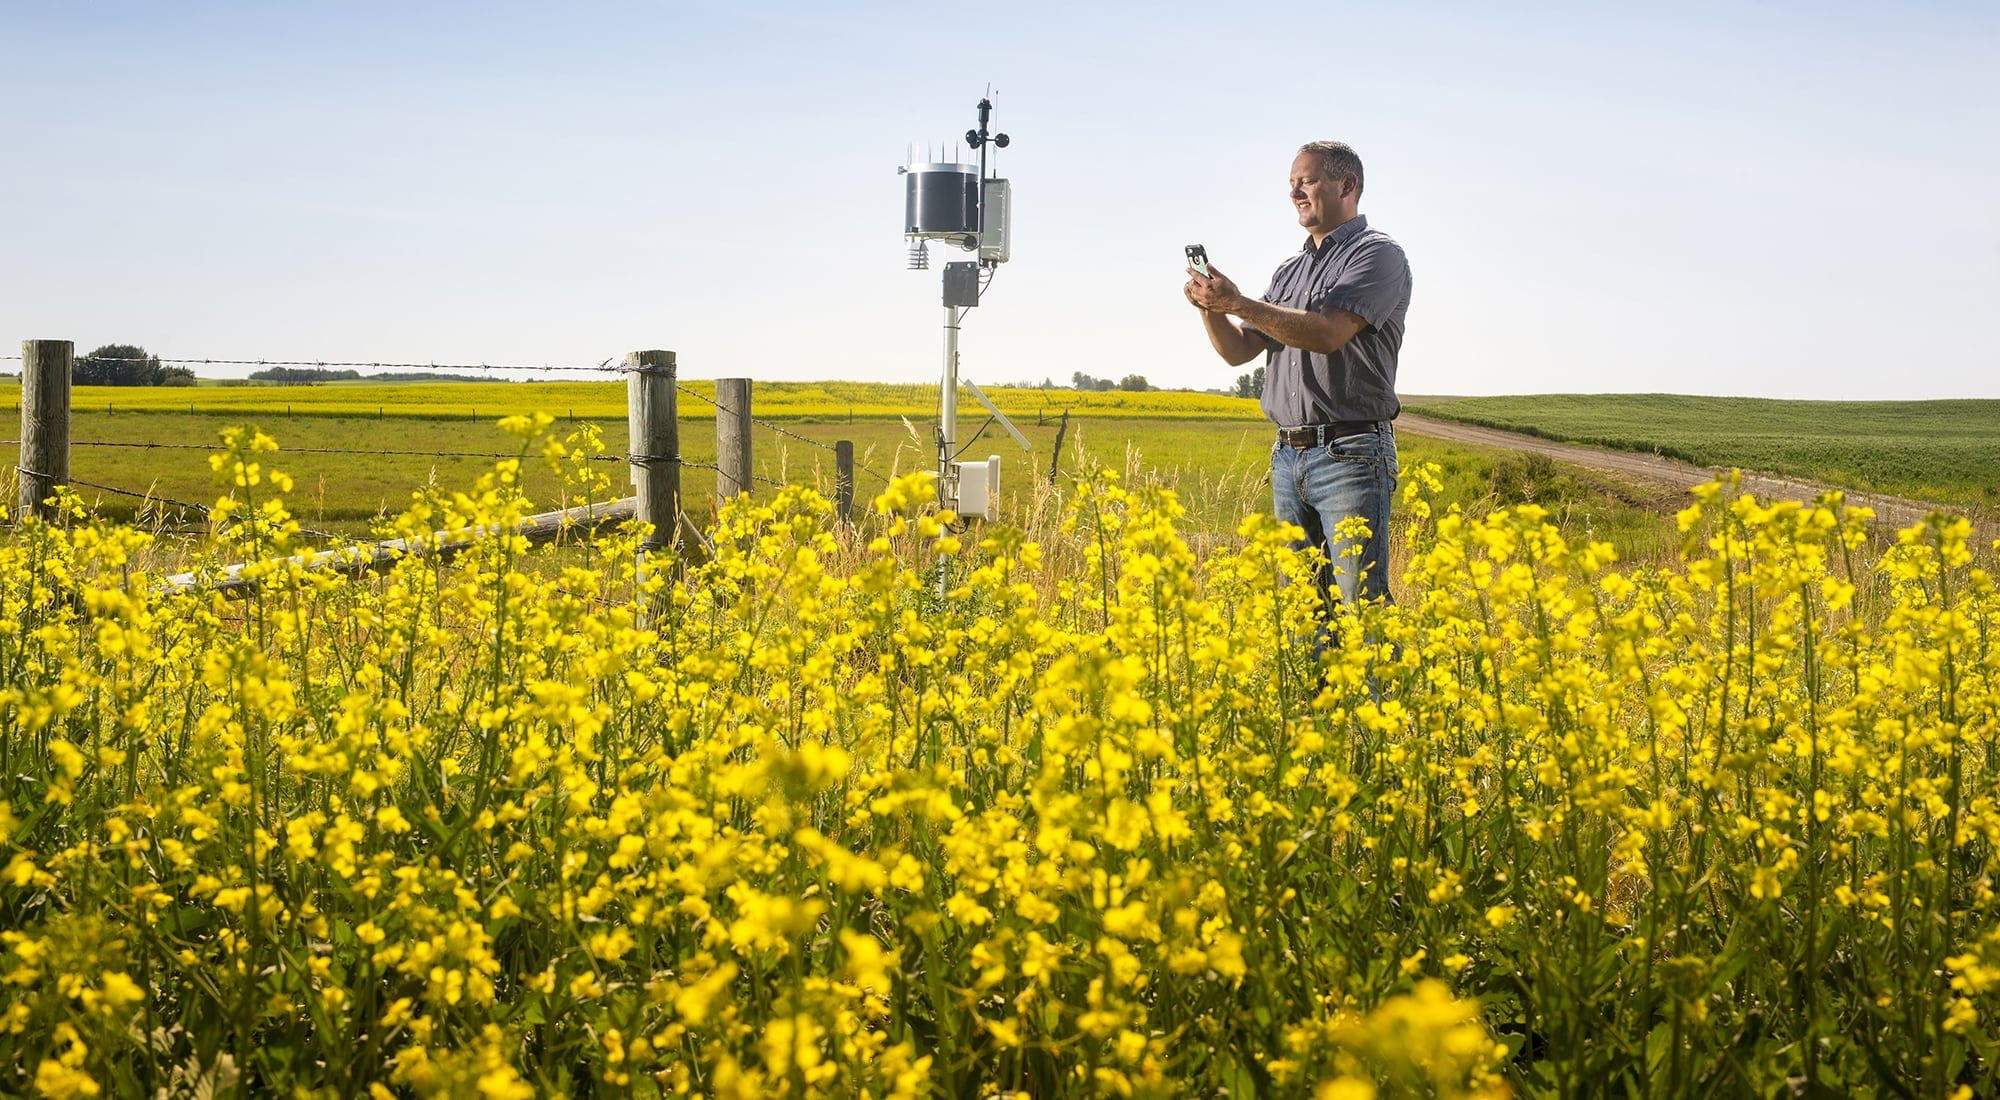 Remote control farming is coming to a prairie near you